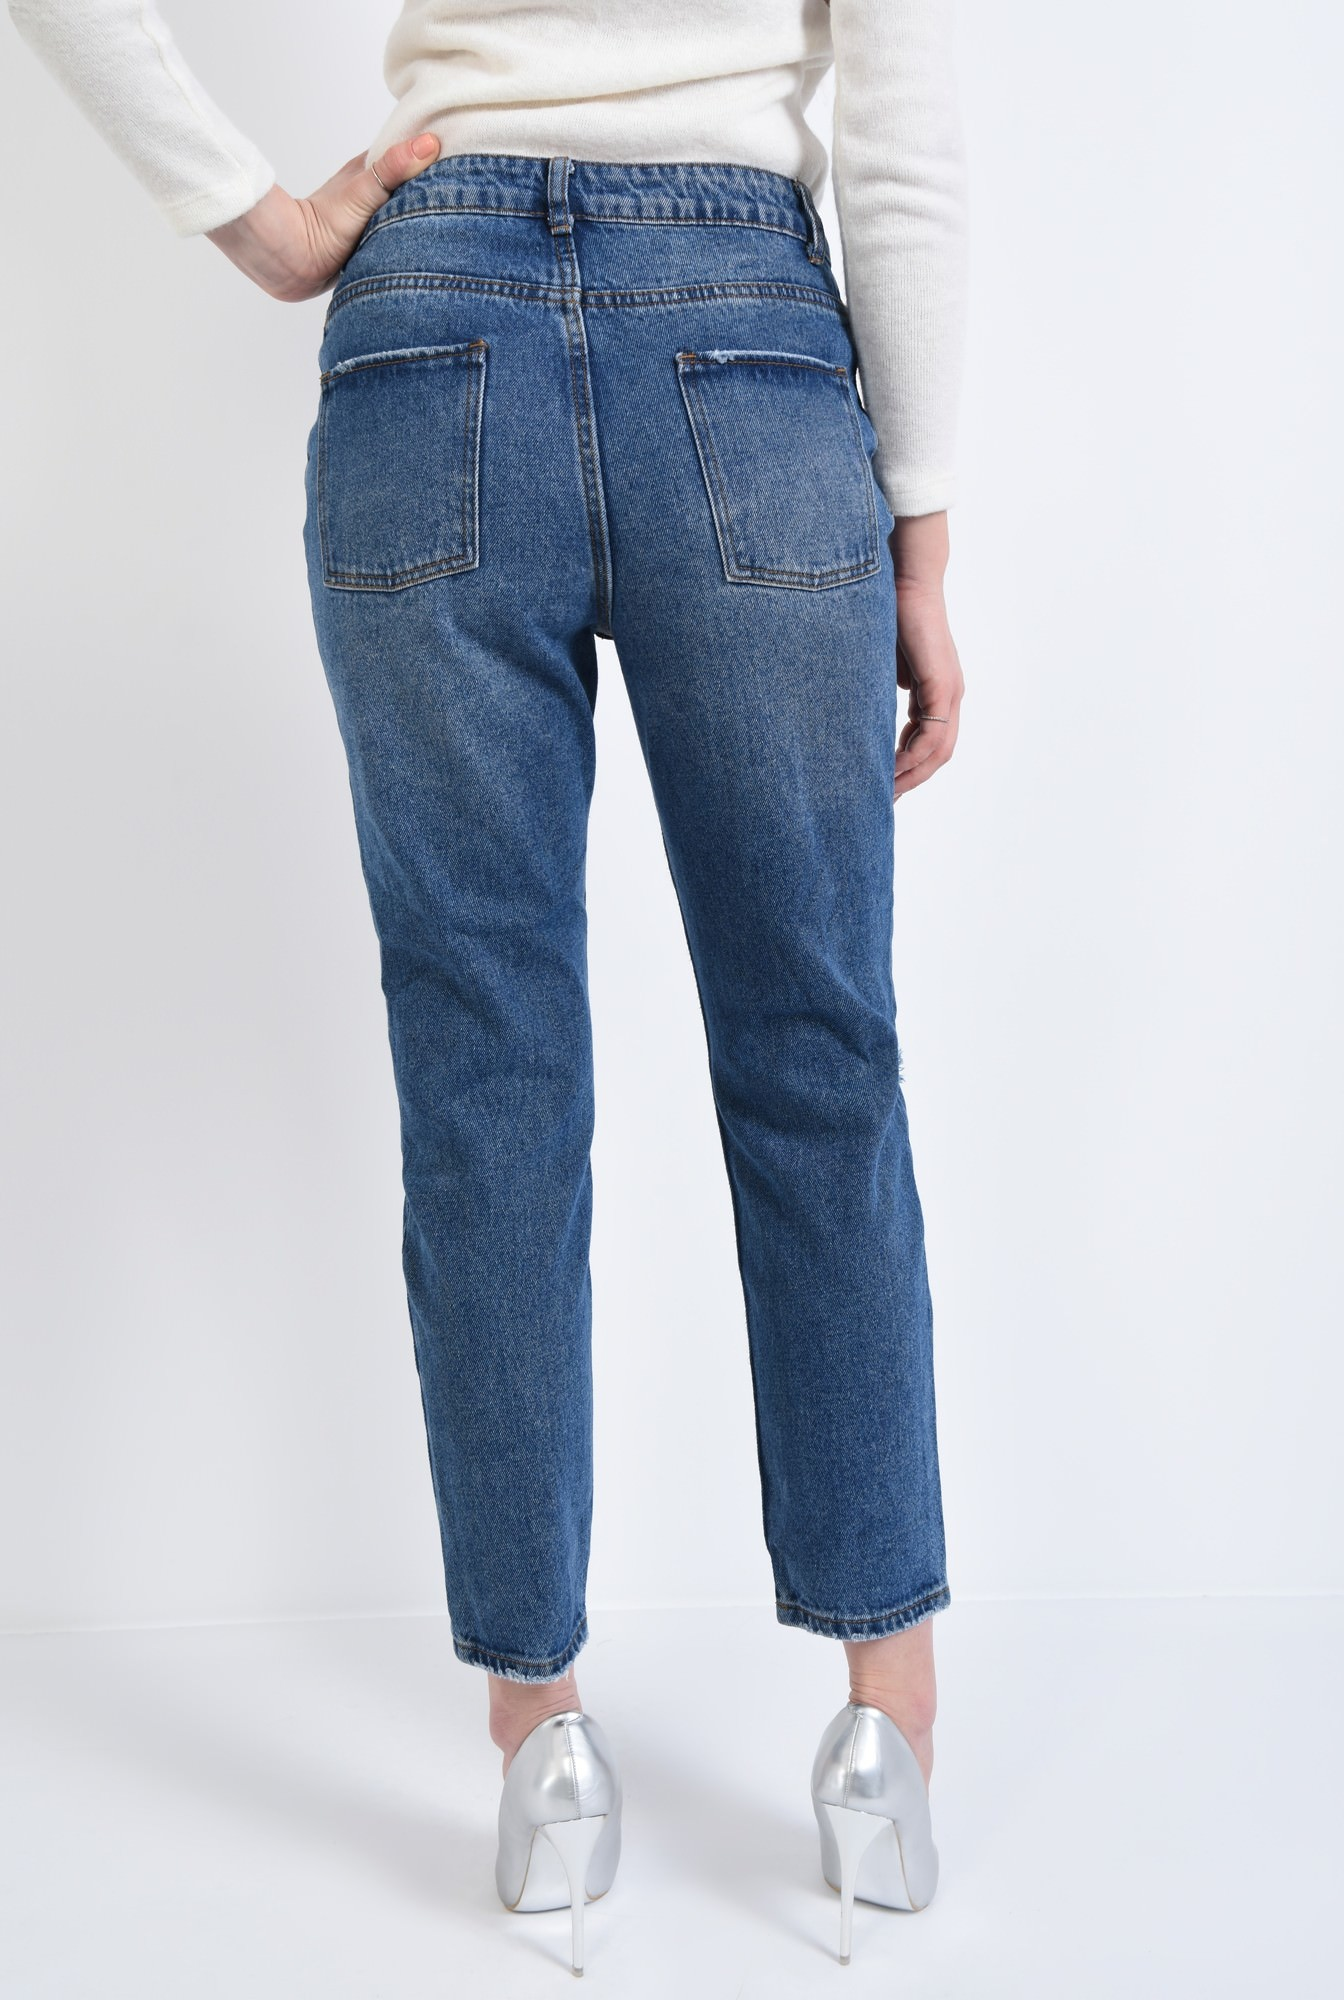 1 - 360 - Pantaloni casual, denim, bumbac